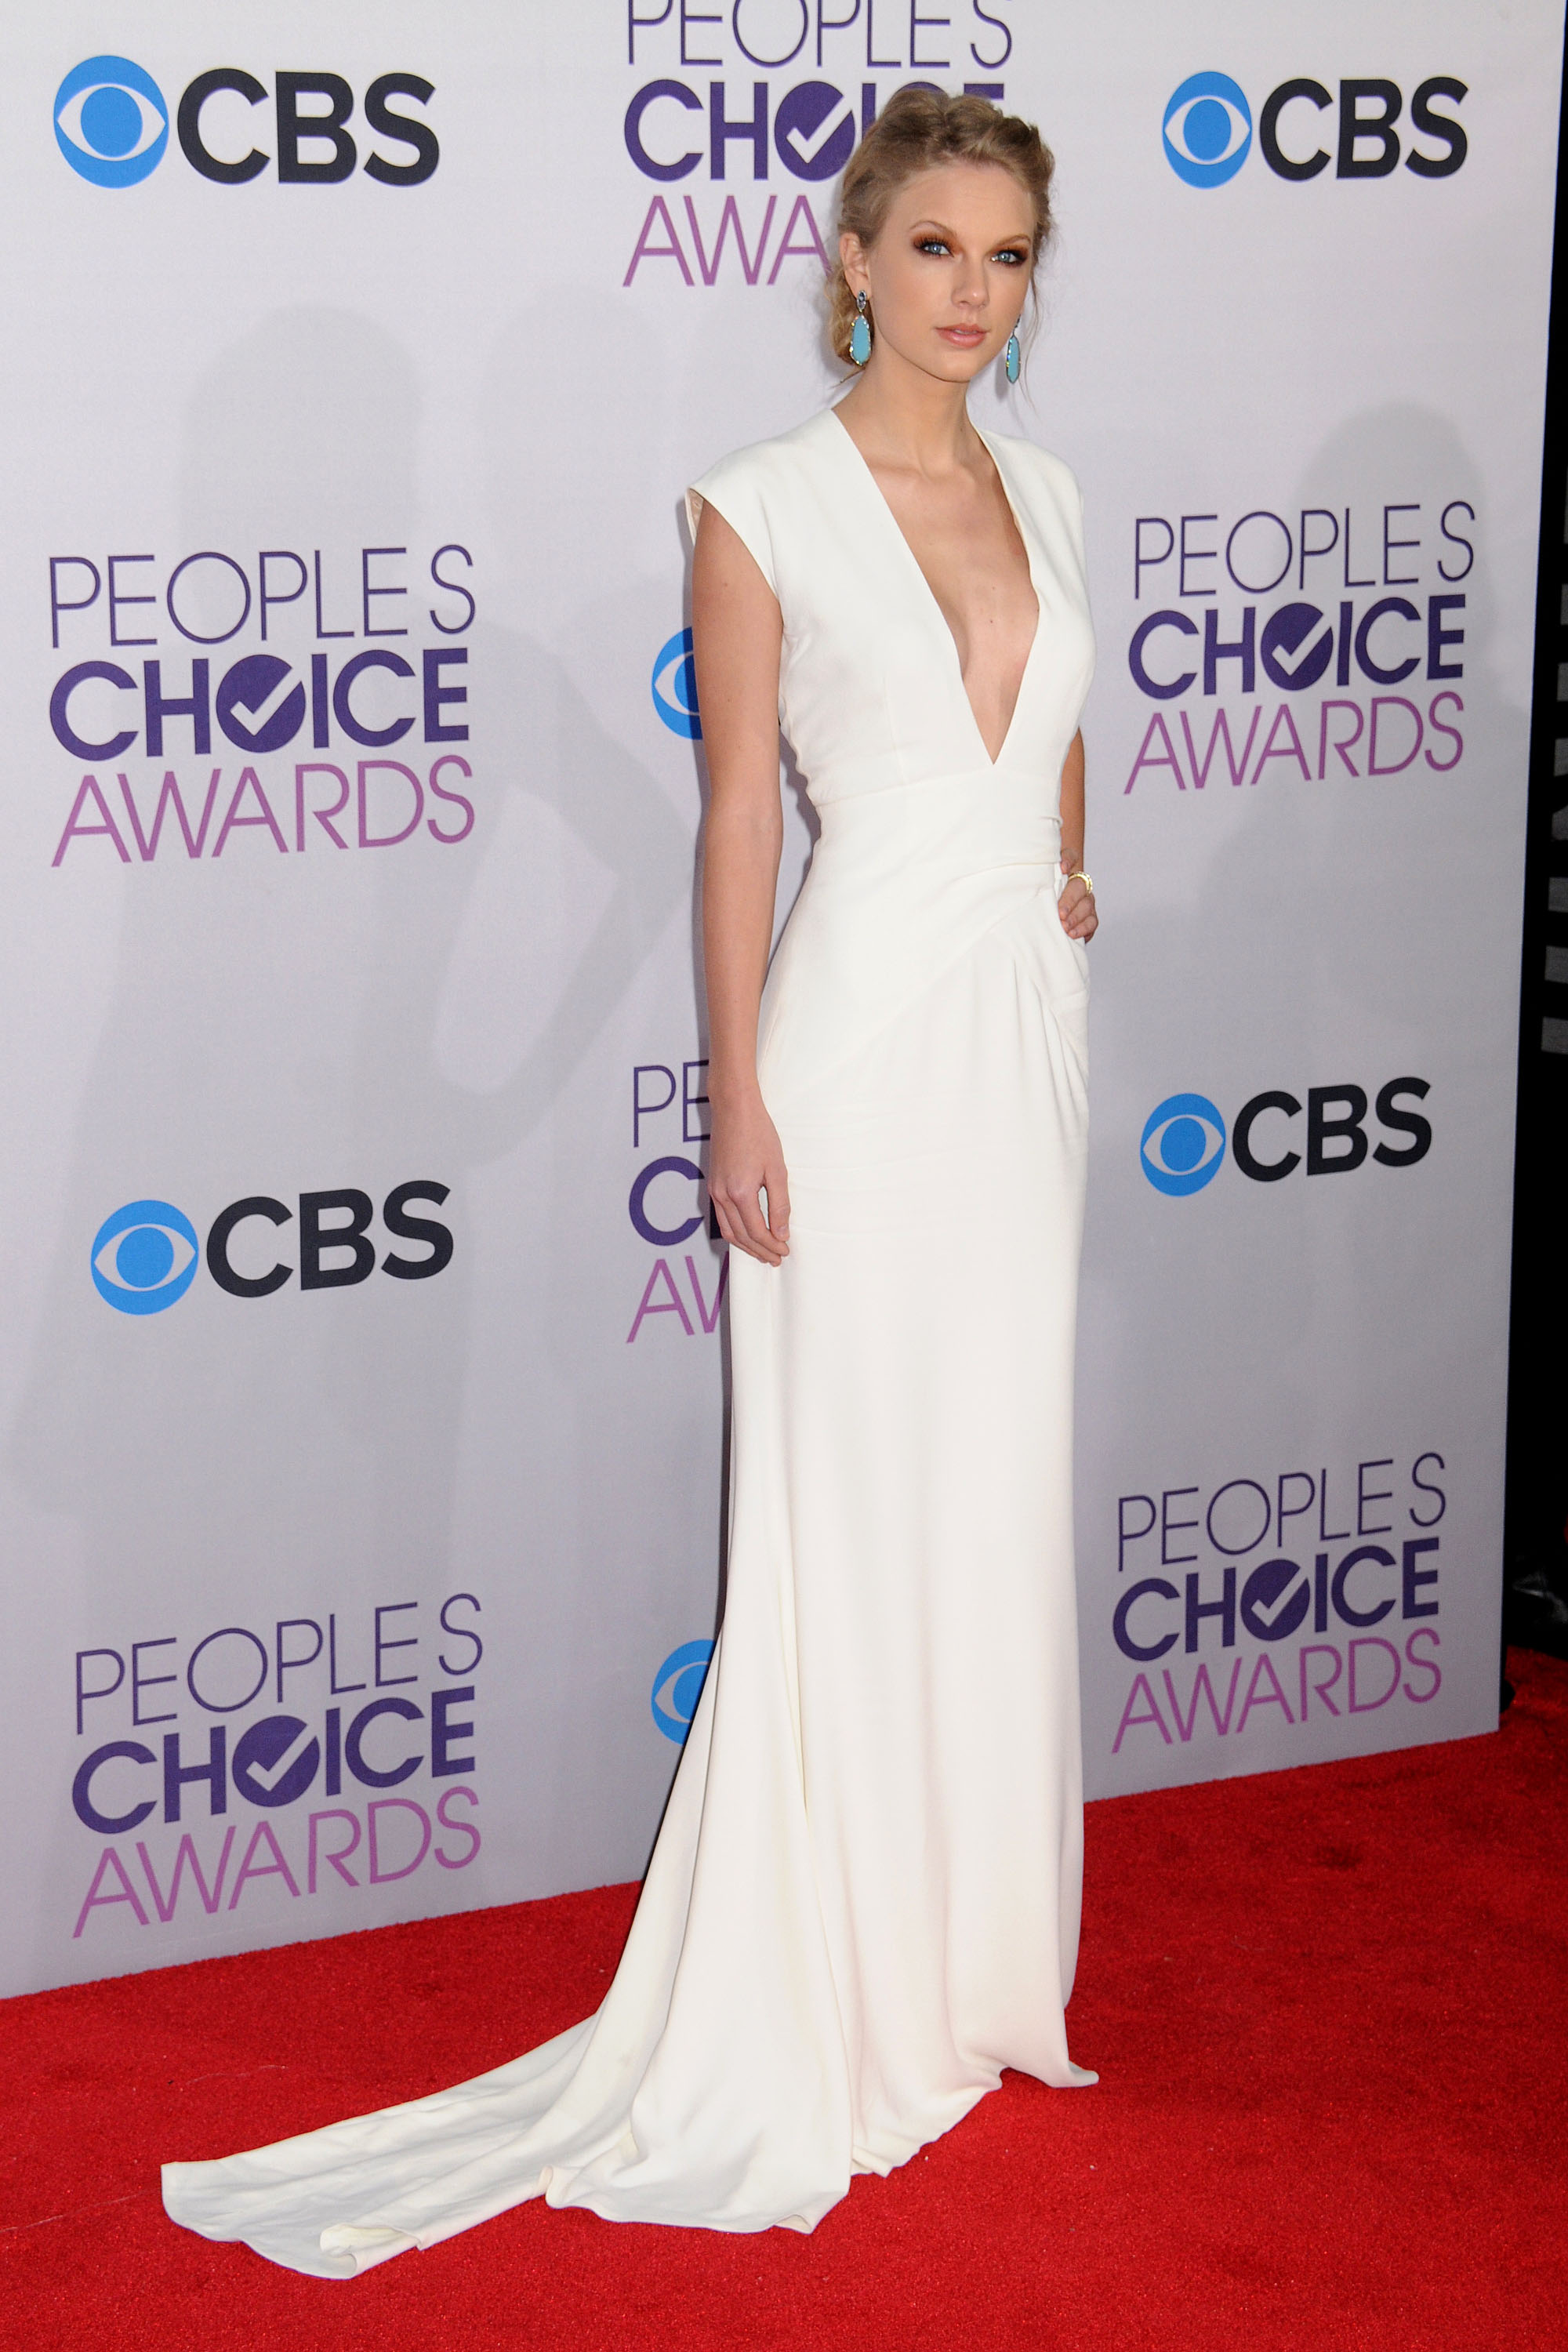 People's Choice Awards: The Complete List of Winners ...